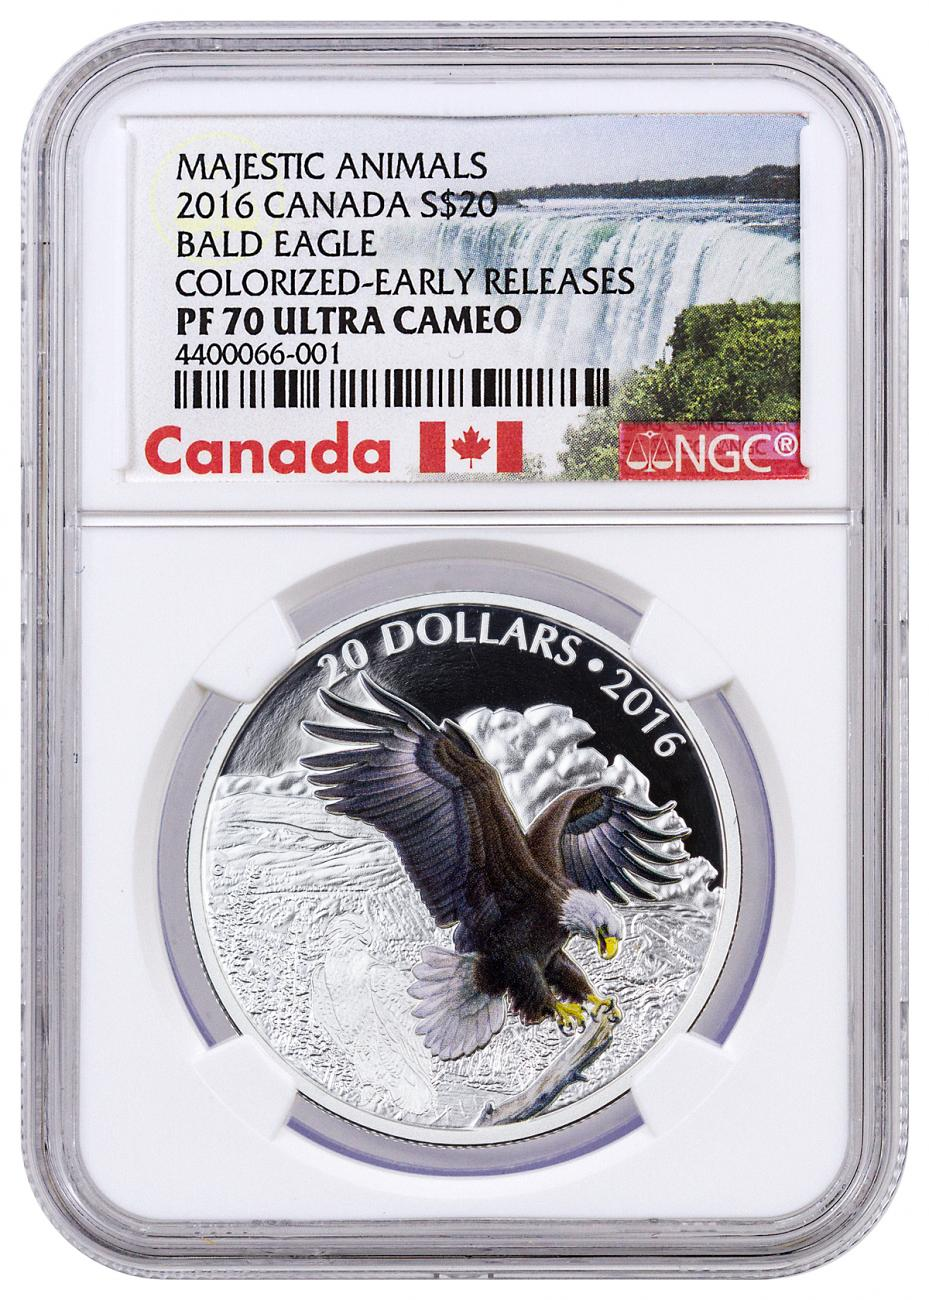 2016 Canada $20 1 oz. Colorized Proof Silver Majestic Animals - Baronial Bald Eagle - NGC PF70 UC Early Releases (Exclusive Canada Label)